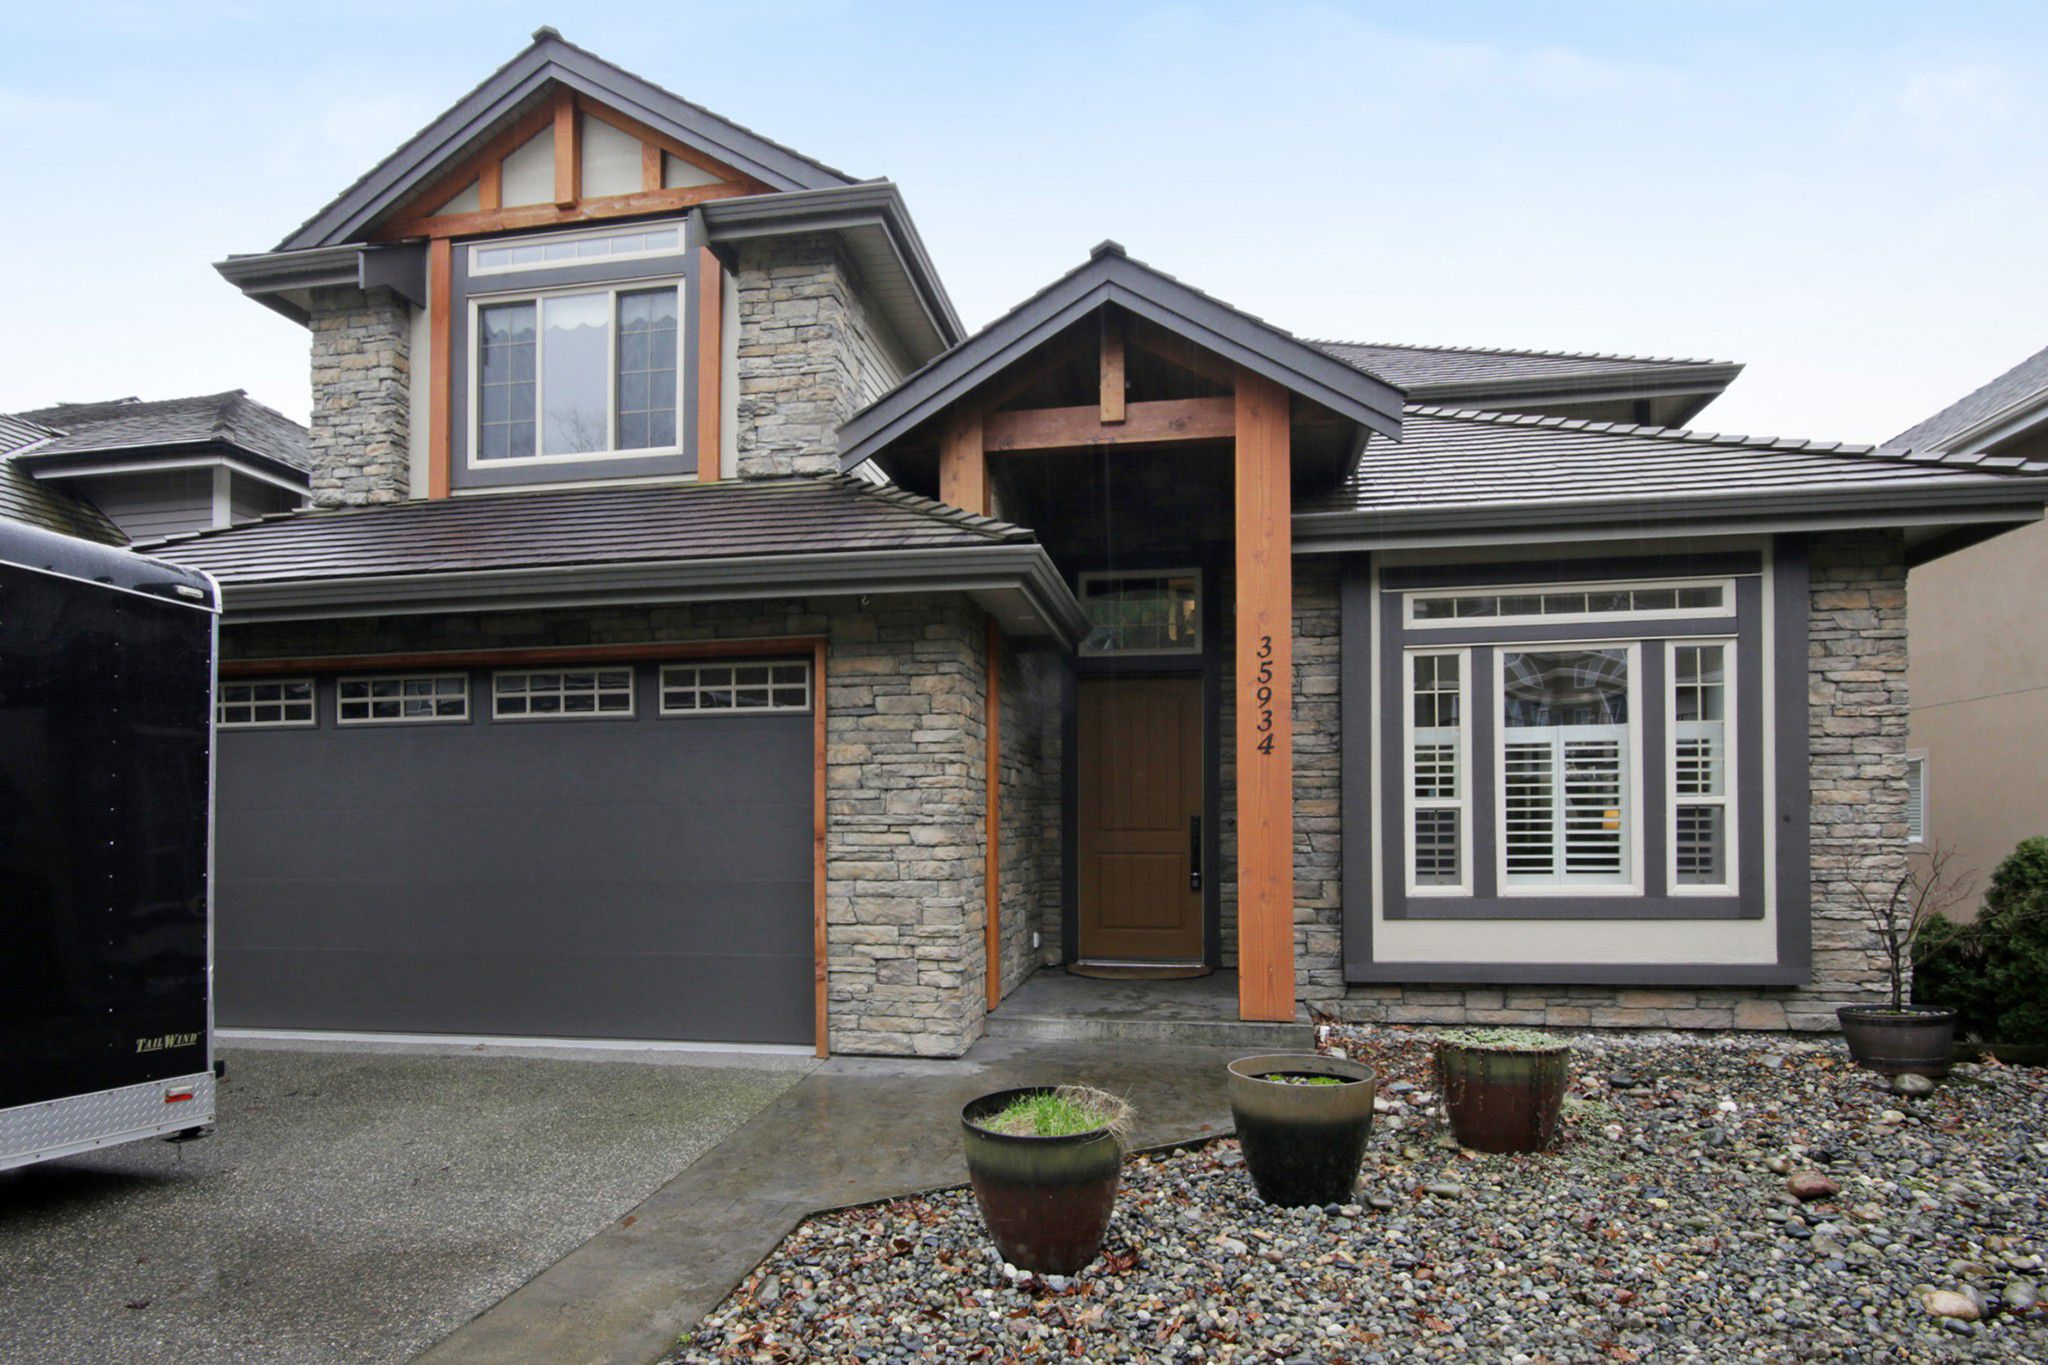 Main Photo: 35934 REGAL Parkway in Abbotsford: Abbotsford East House for sale : MLS®# R2235544